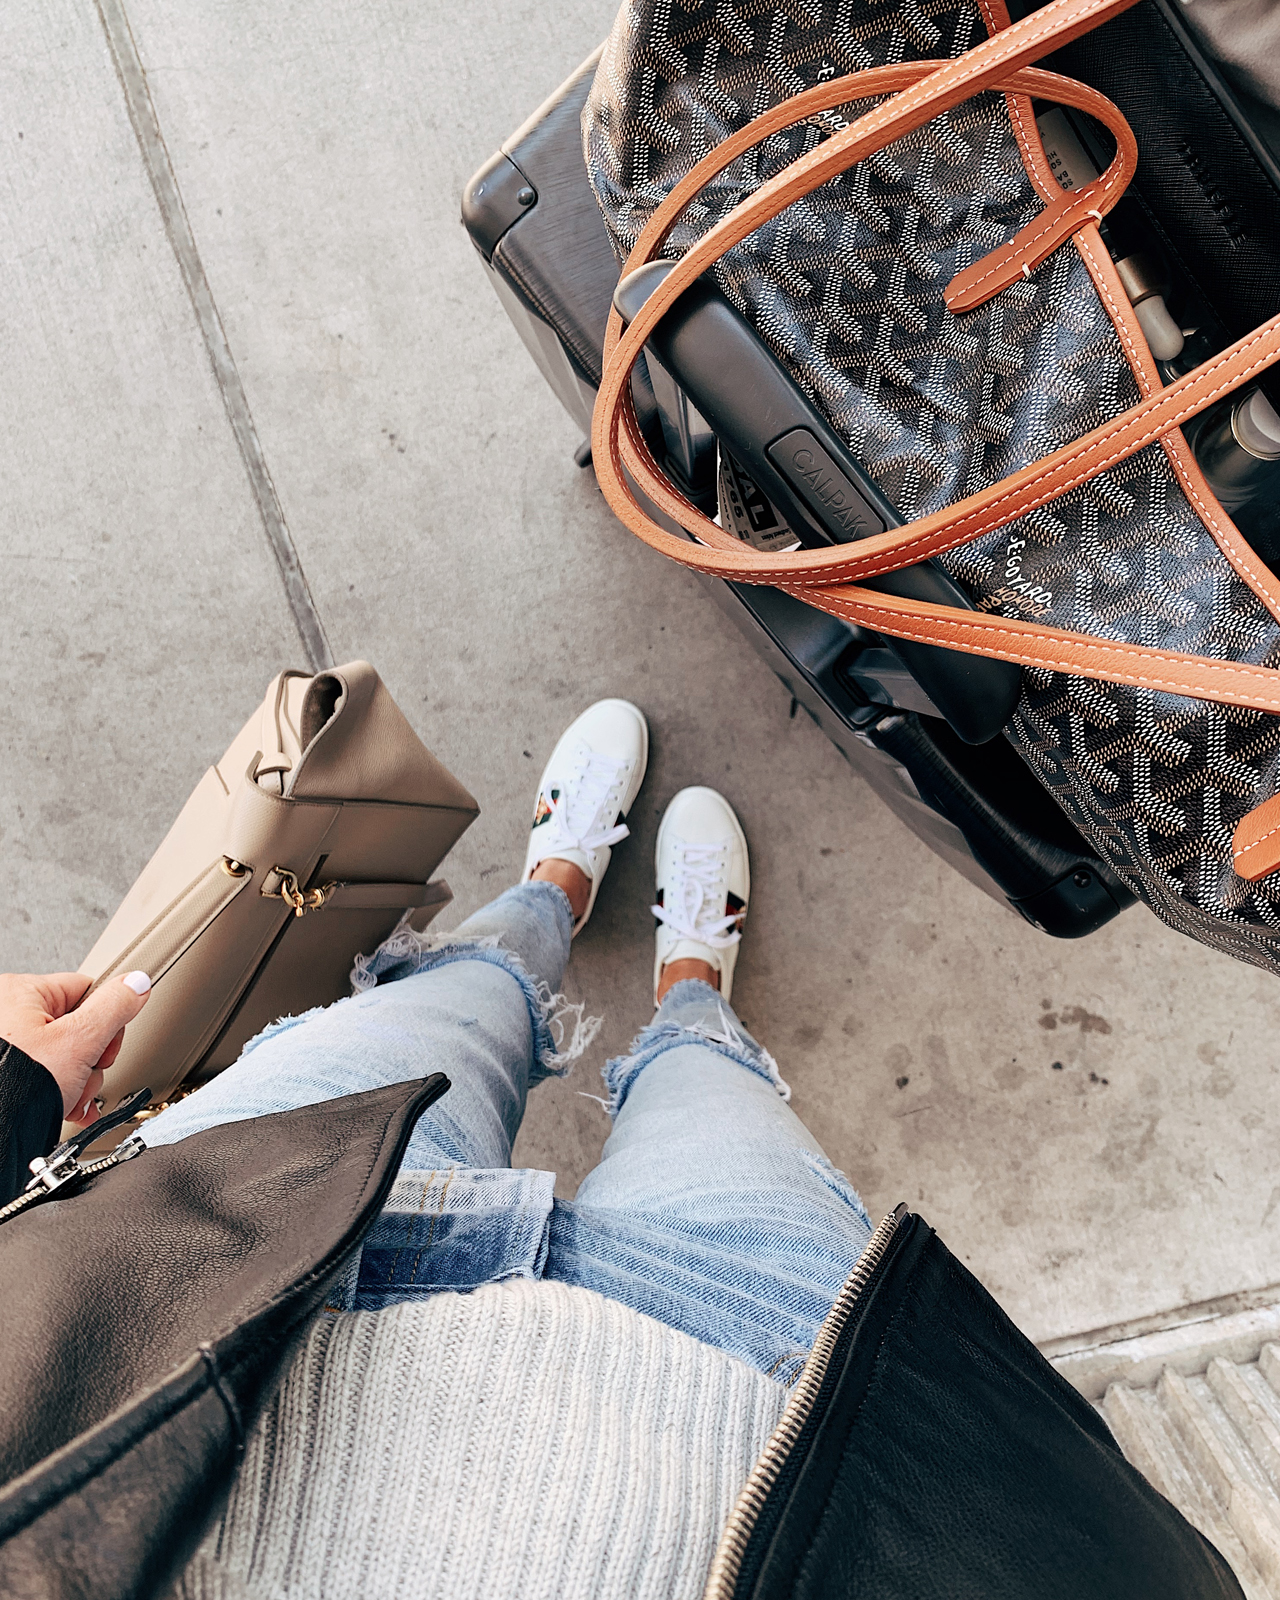 Fashion Jackson Airport Style Ripped Jeans Gucci Sneakers Goyard Tote Calpak Luggage